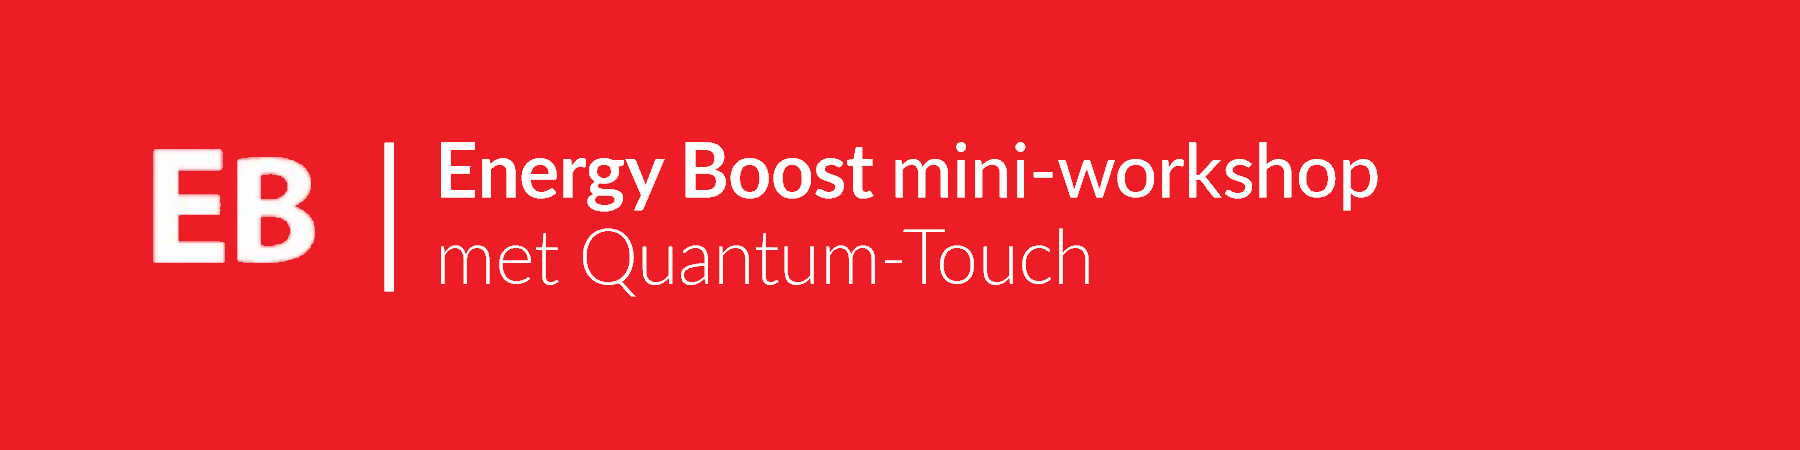 Quantum-Touch Energy Boost mini-workshop